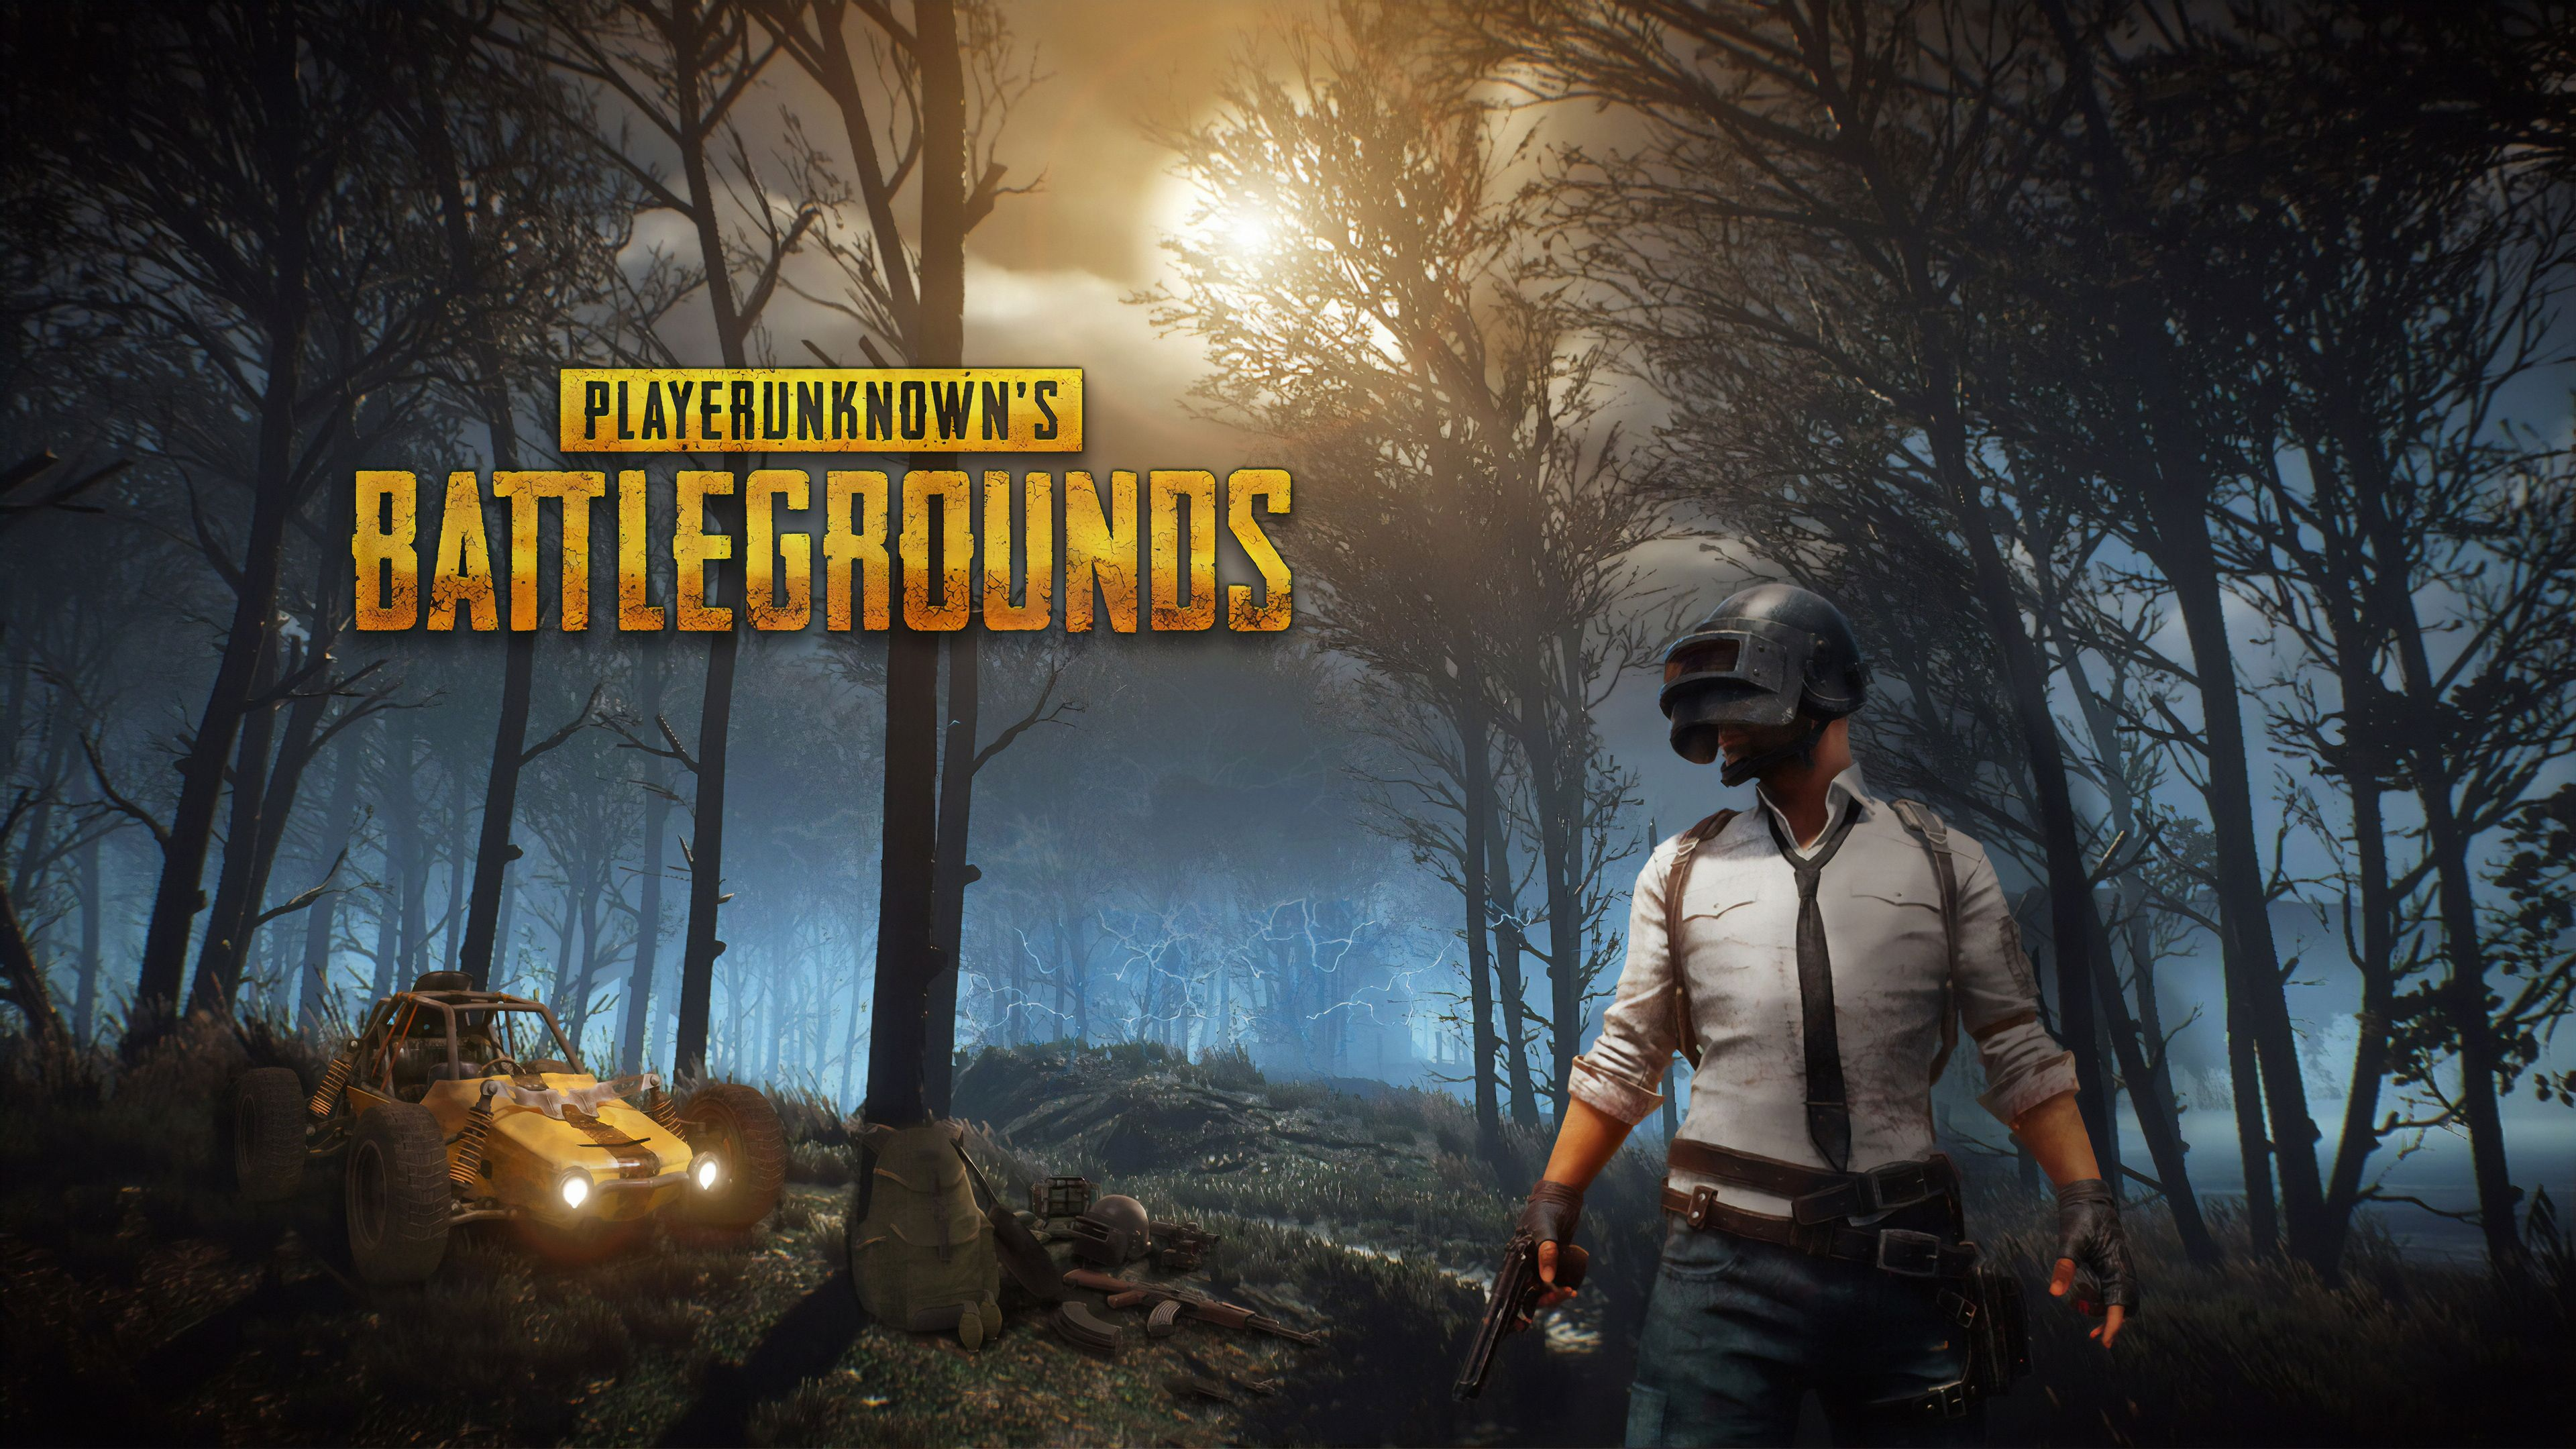 Pubg 2019 New Pubg Wallpapers Playerunknowns Battlegrounds Wallpapers Hd Wallpapers New 4k Wallpaper Hd Wallpapers For Pc Wallpaper For Computer Backgrounds